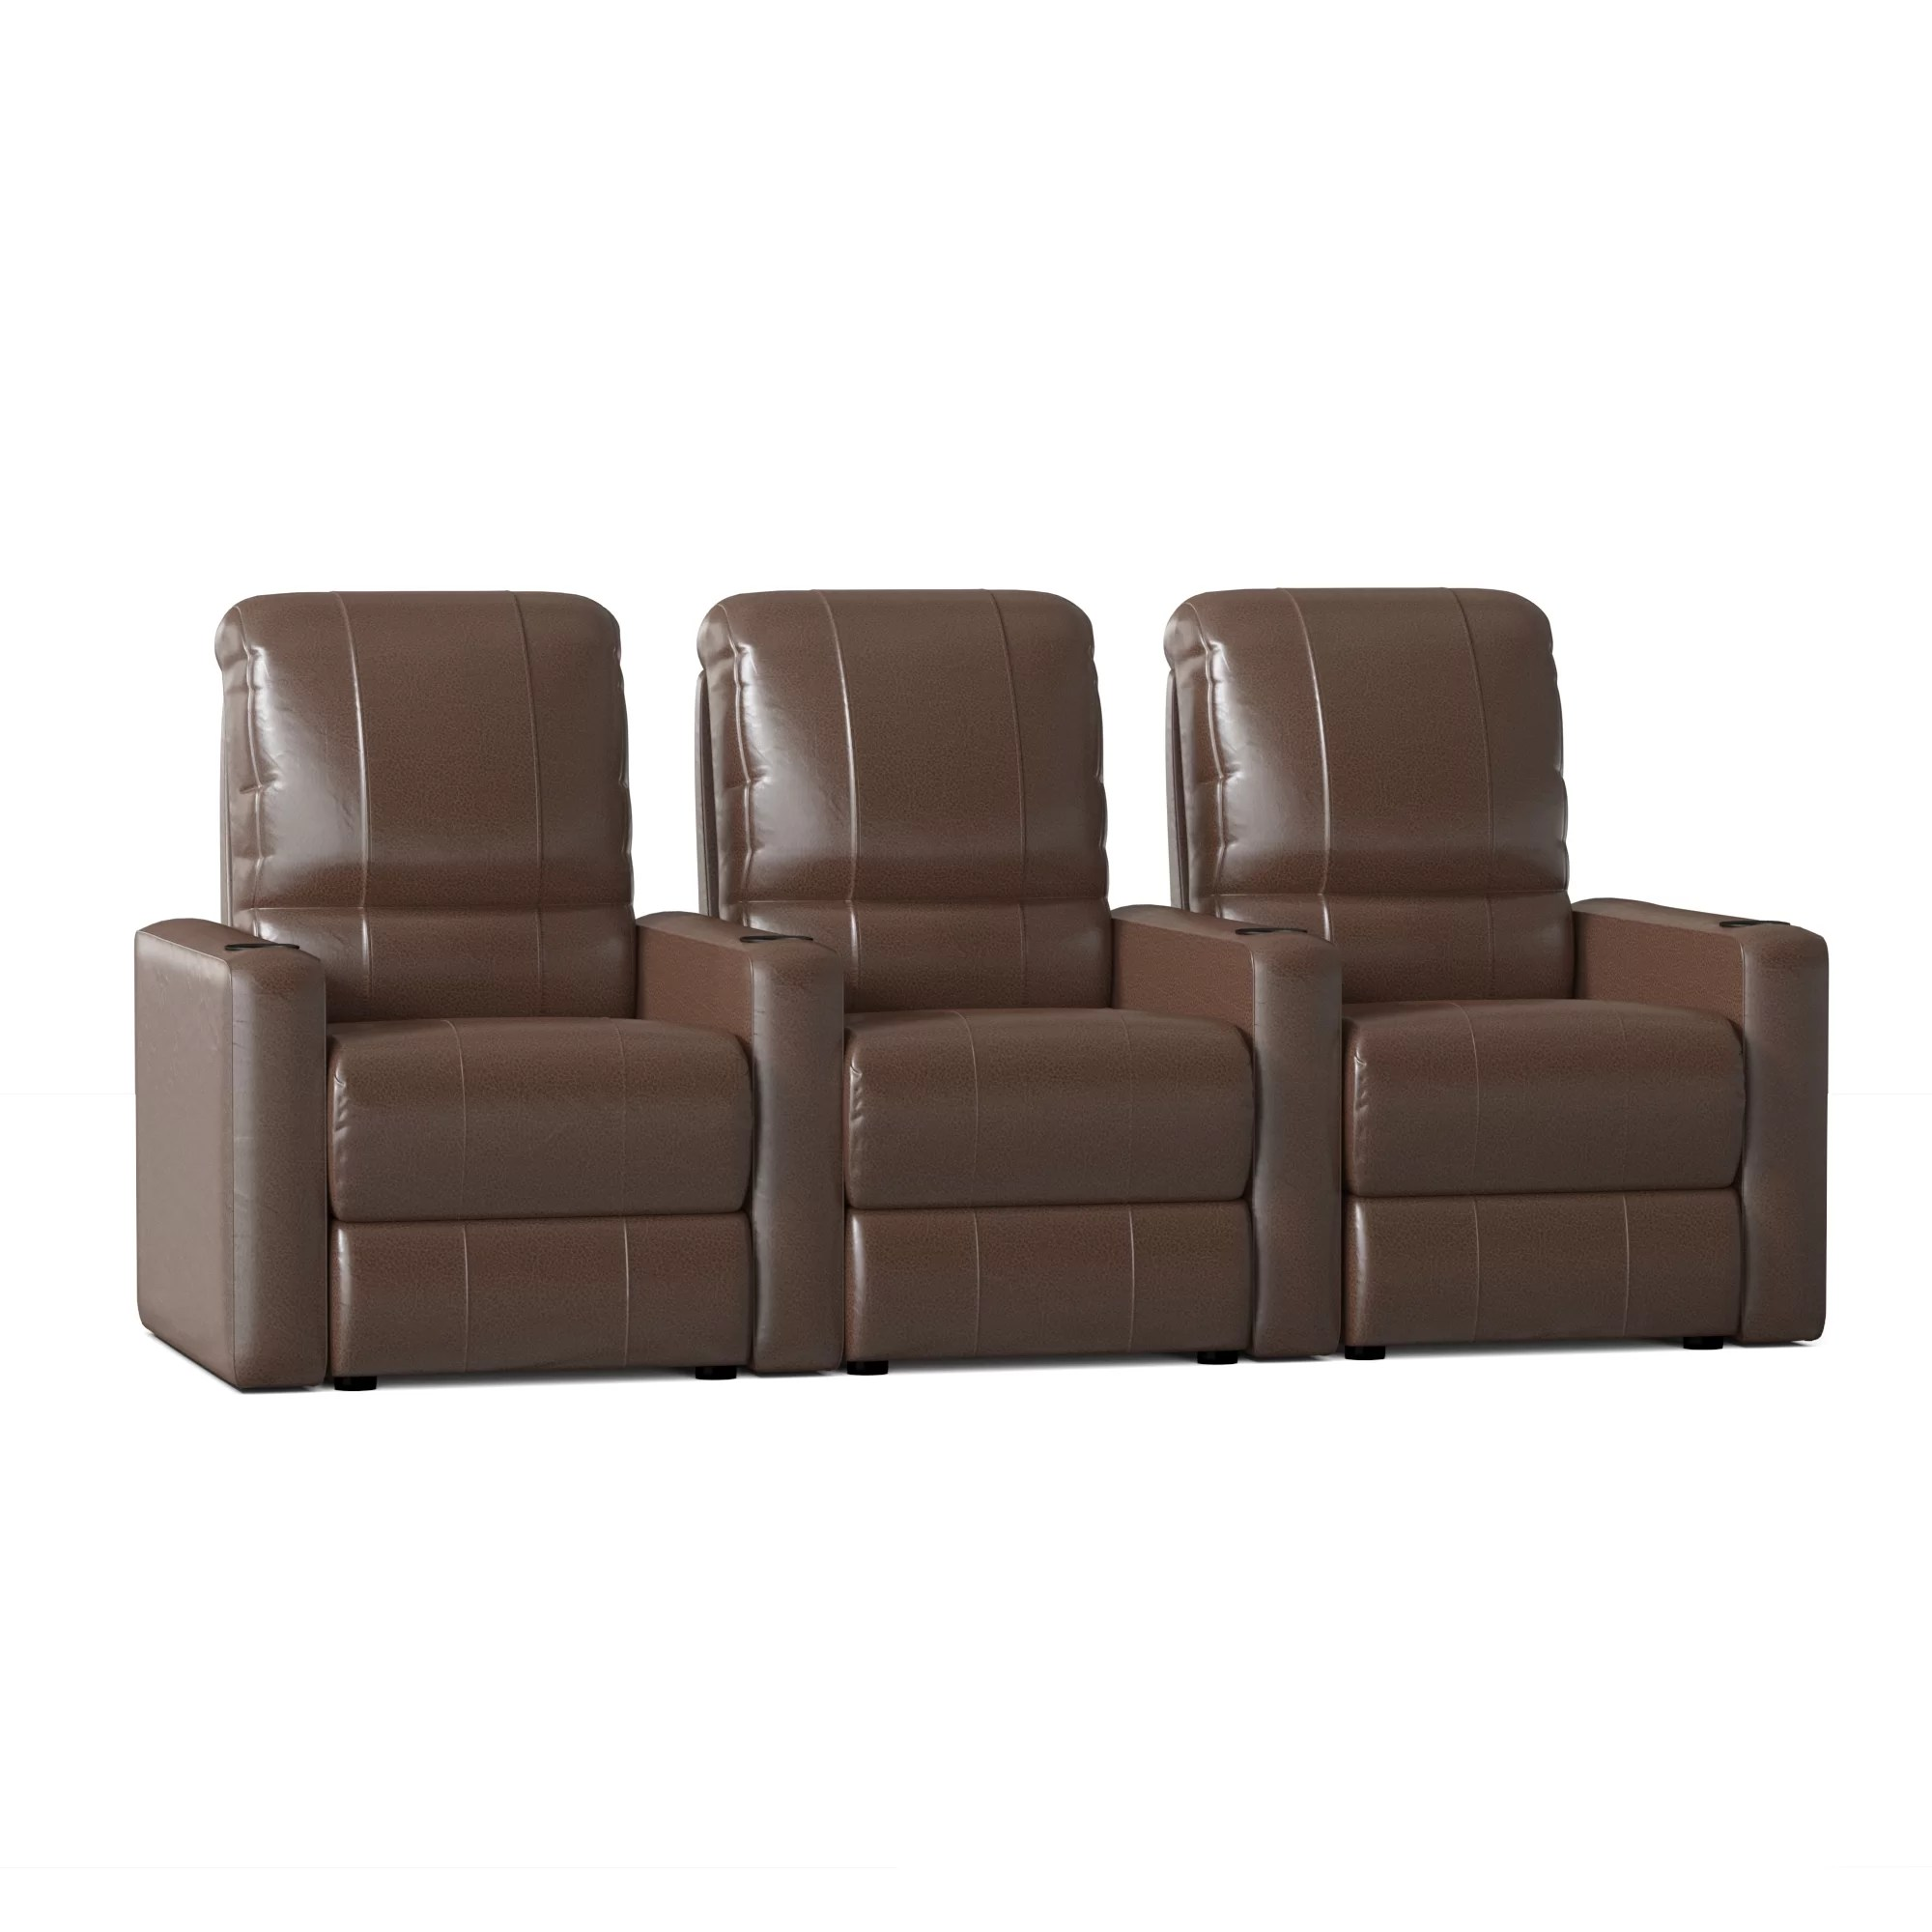 Latitude Run Home Theater Configurable Seating Row Of 4 Reviews Wayfair Ca